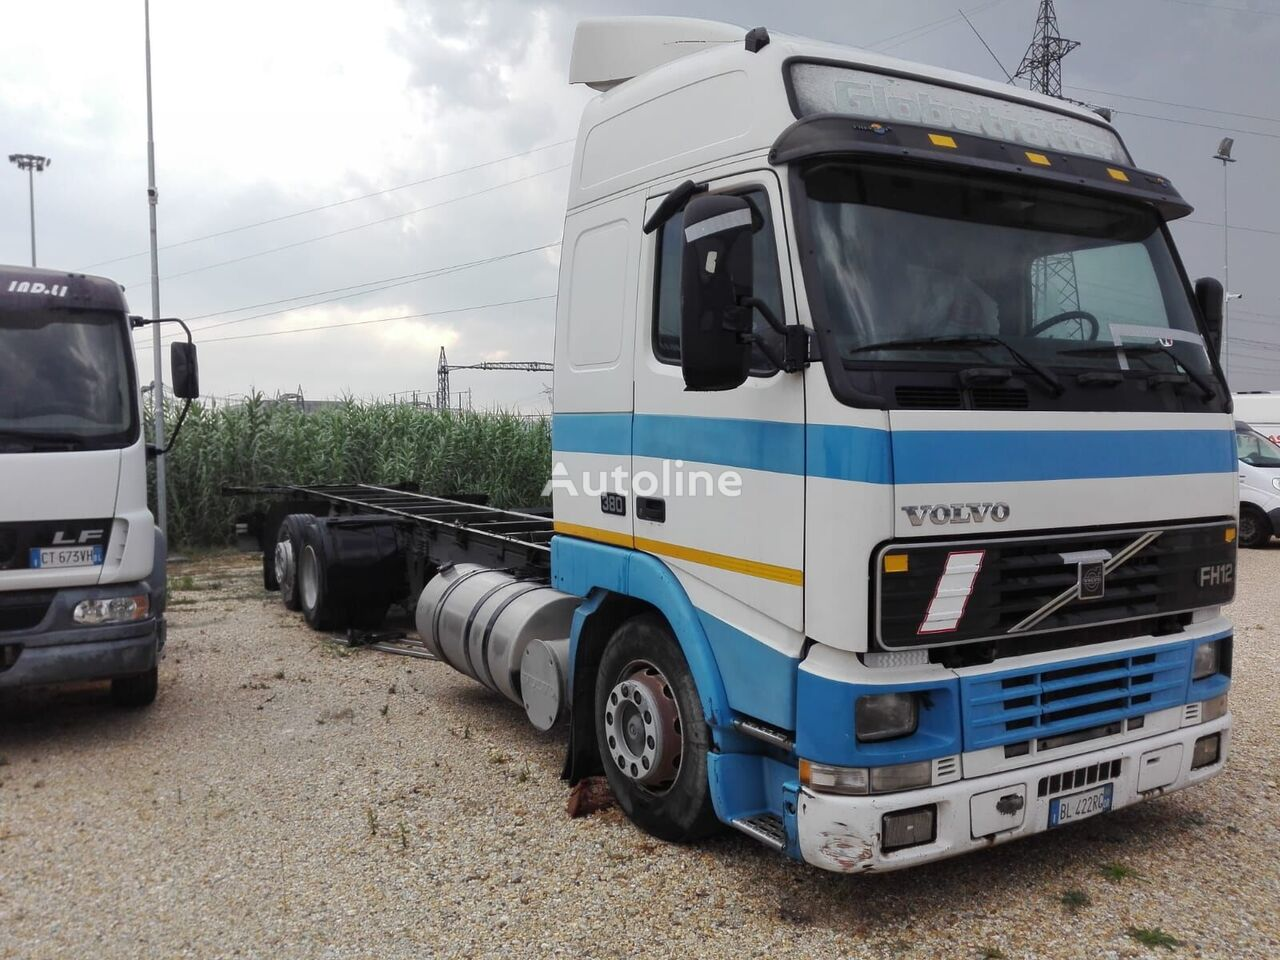 VOLVO FH 12 380 isothermal truck